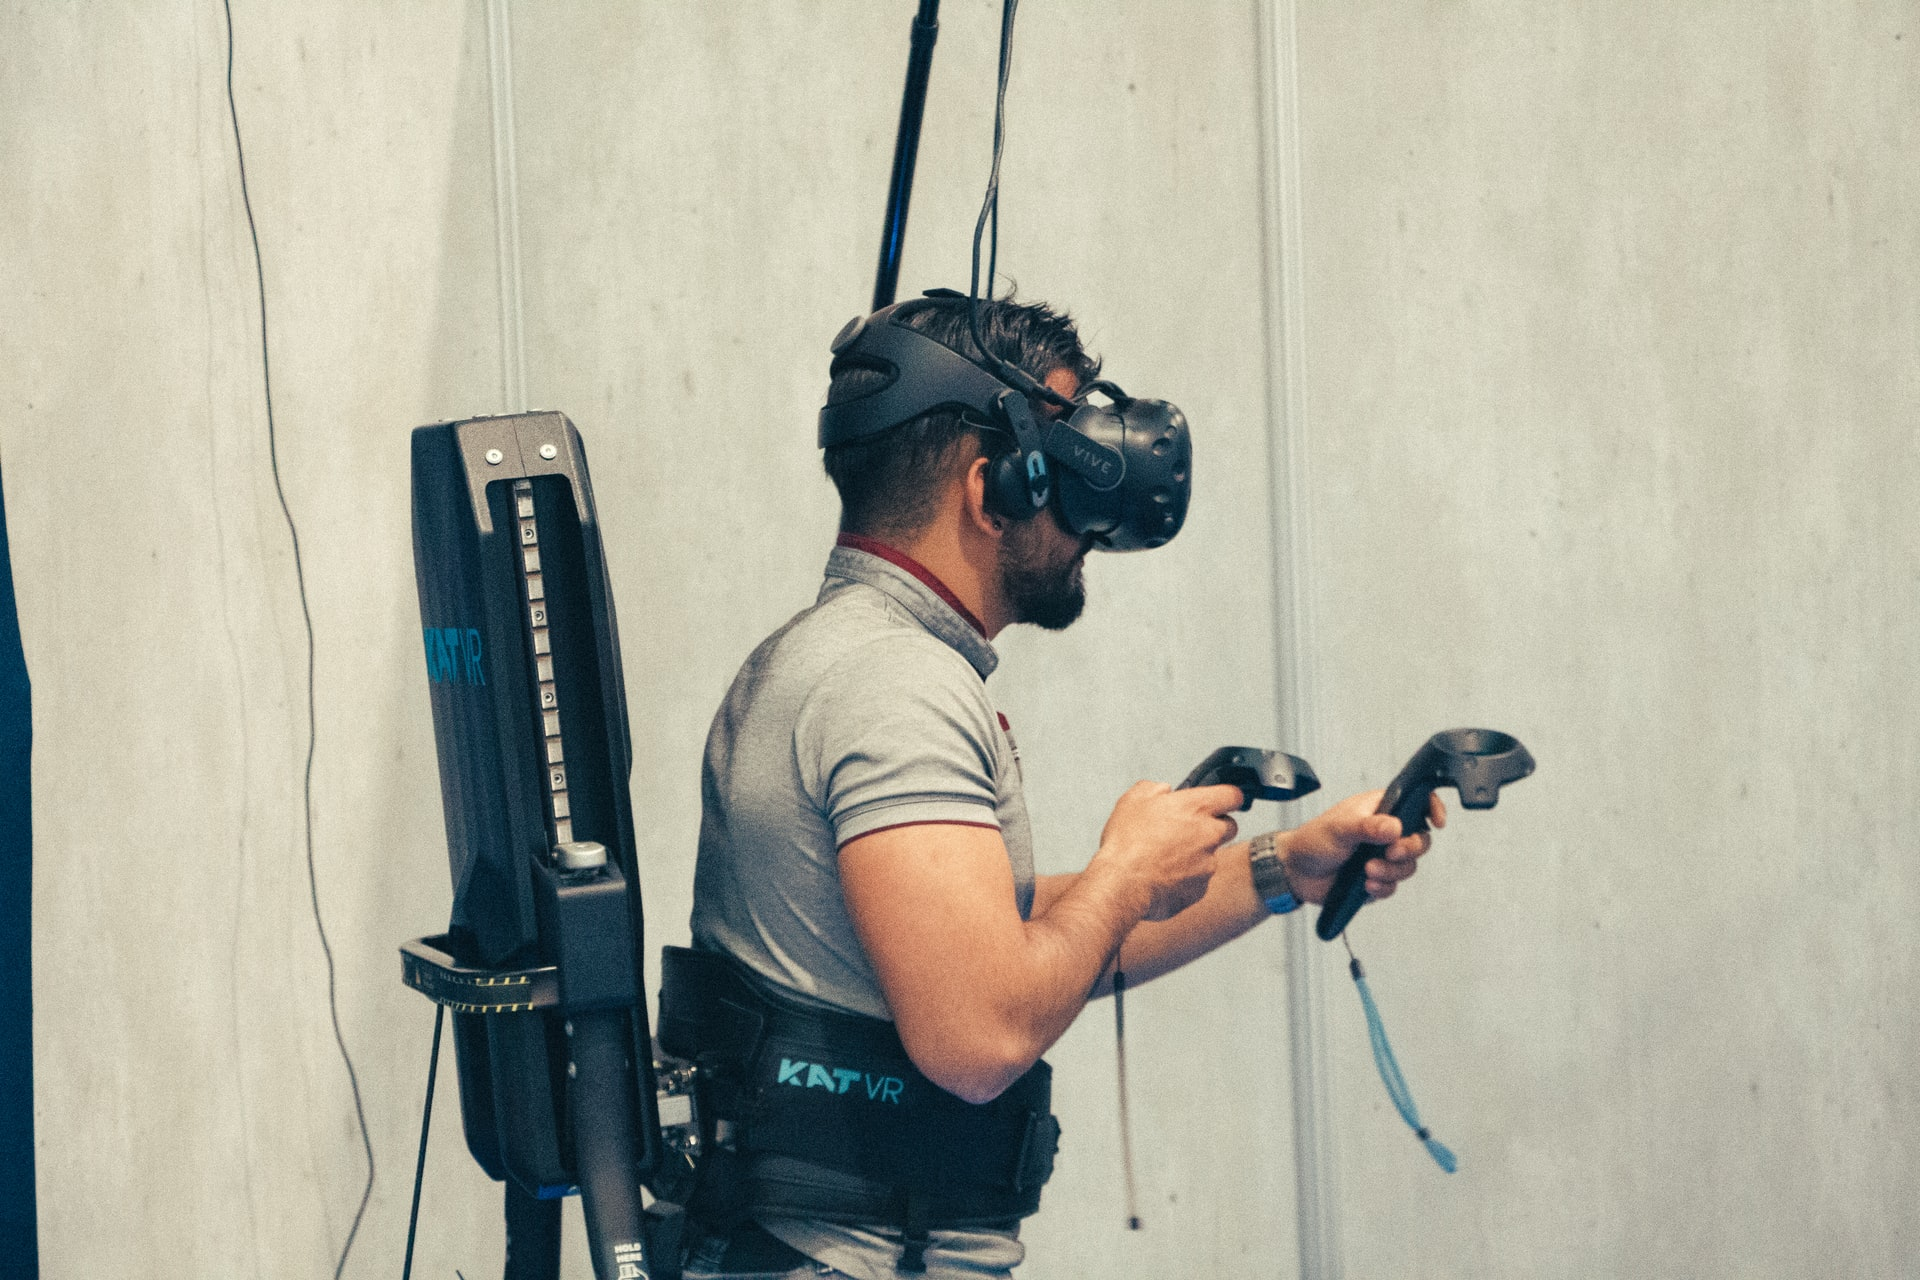 Swedish Startup Gleechi Raises SEK 25 Million to Upscale its VR Training Capabilities